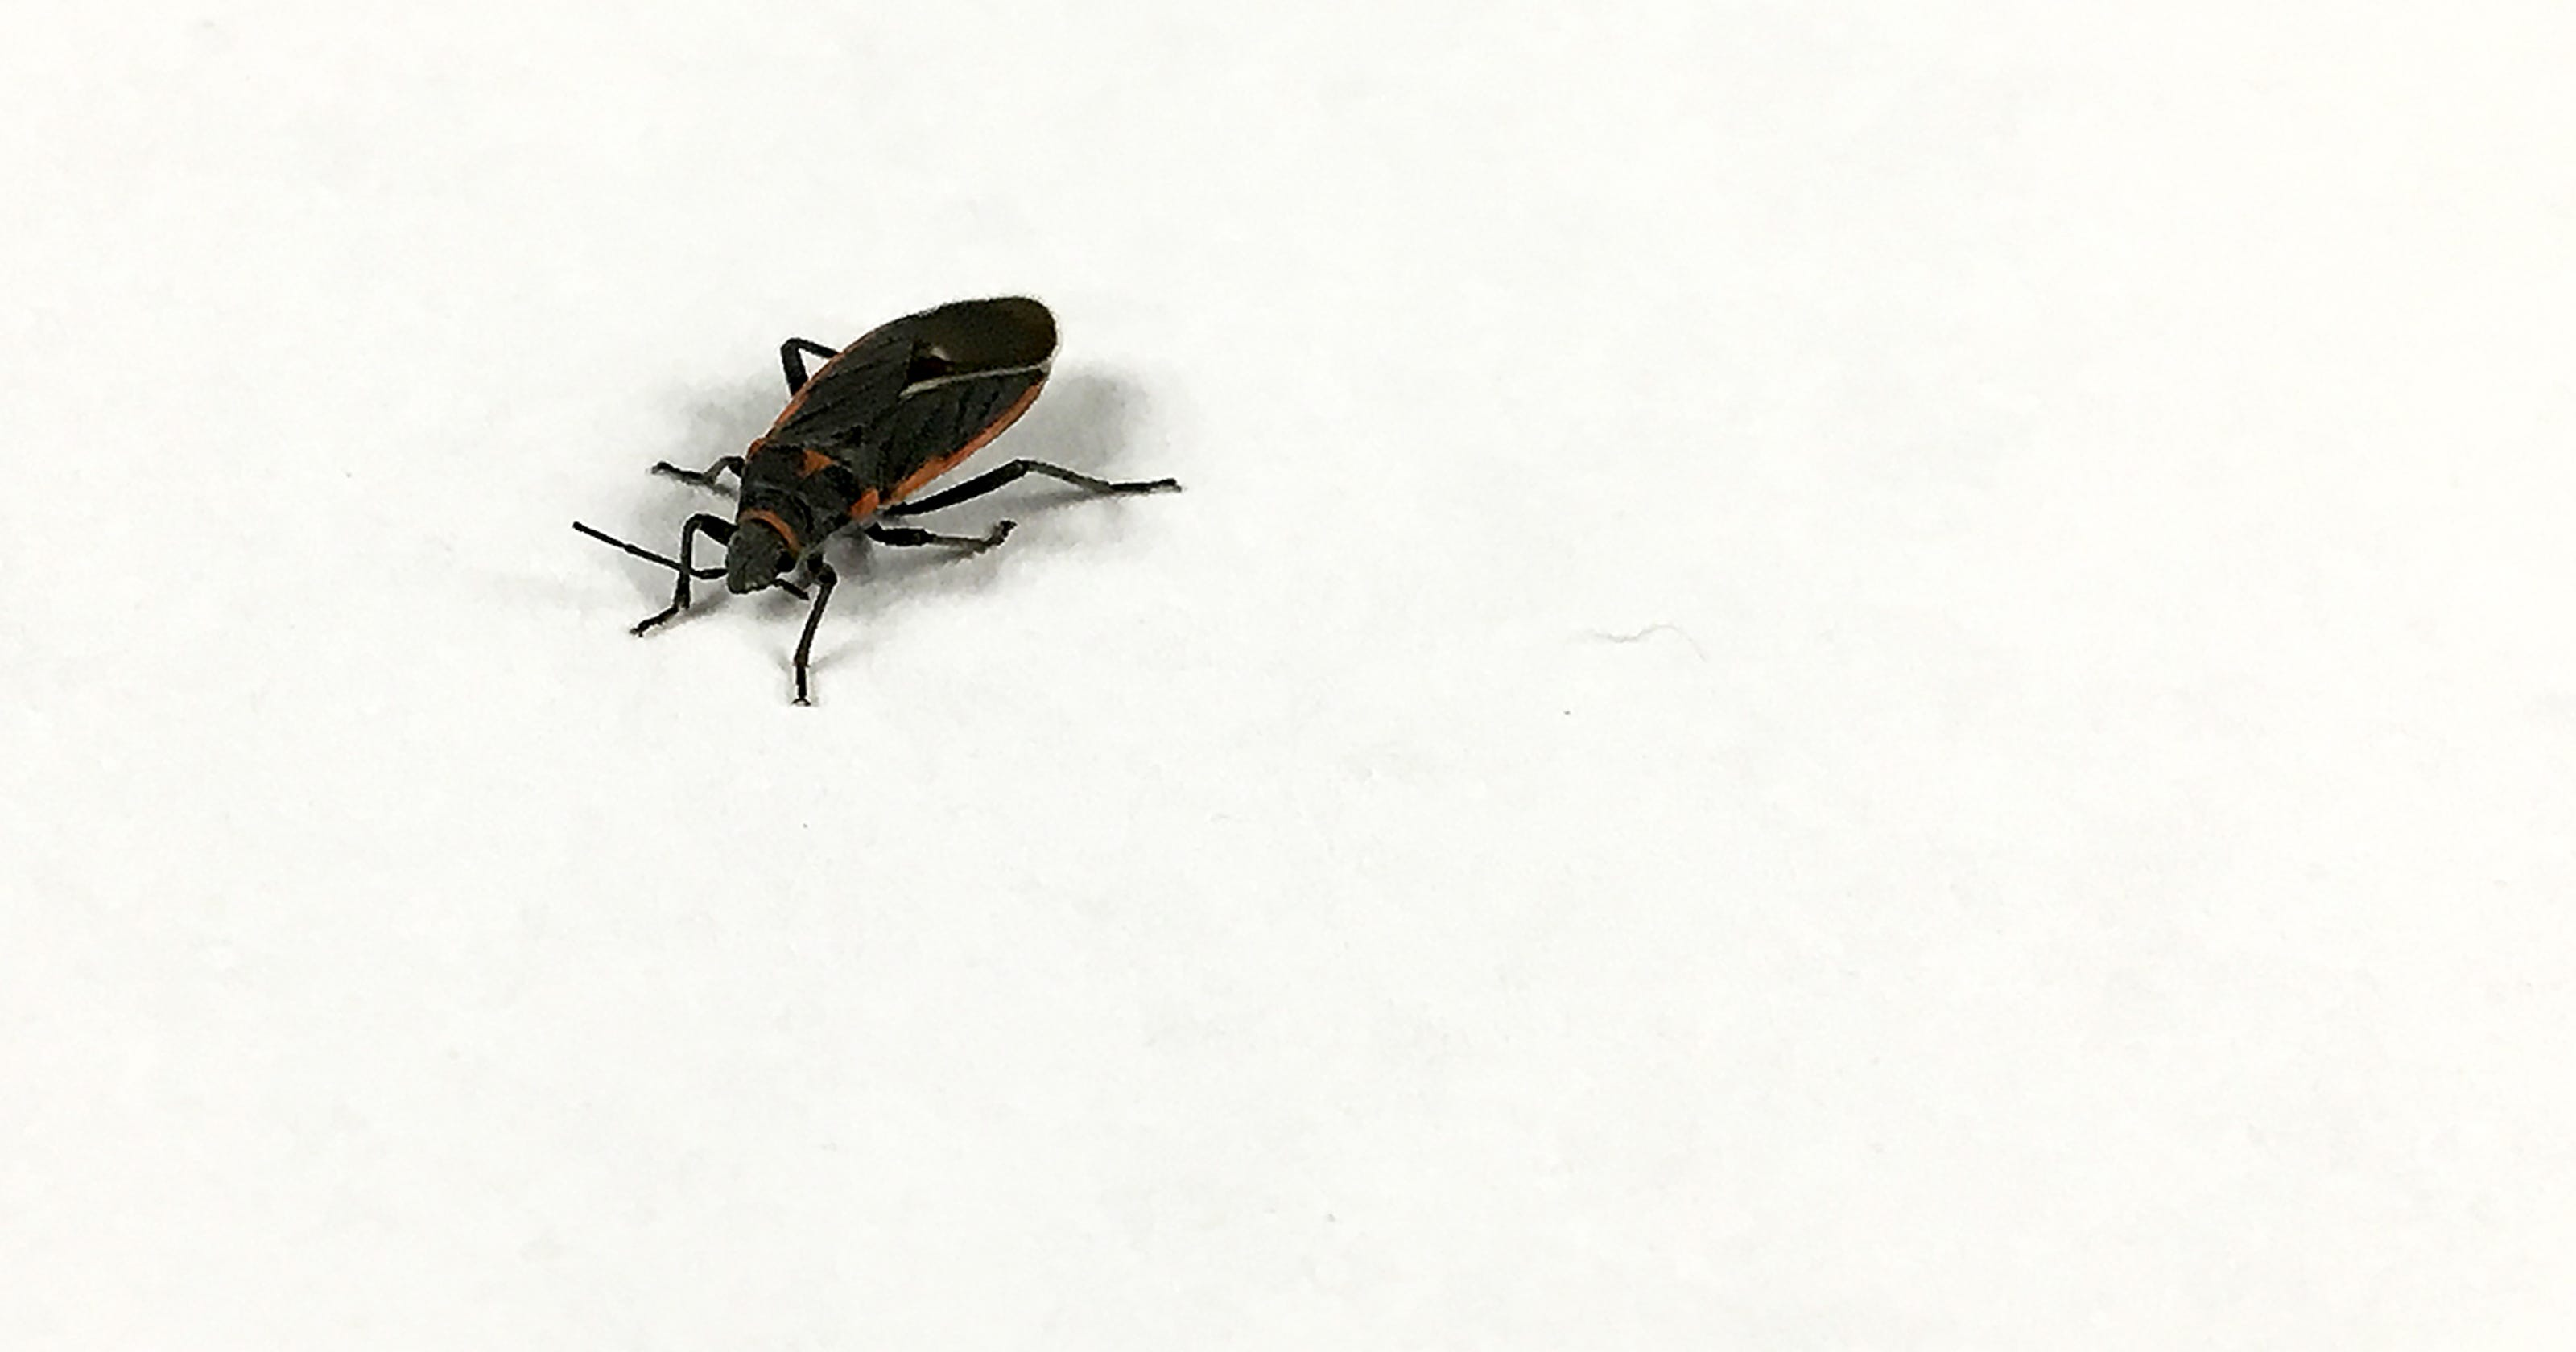 What are these black-and-red bugs?